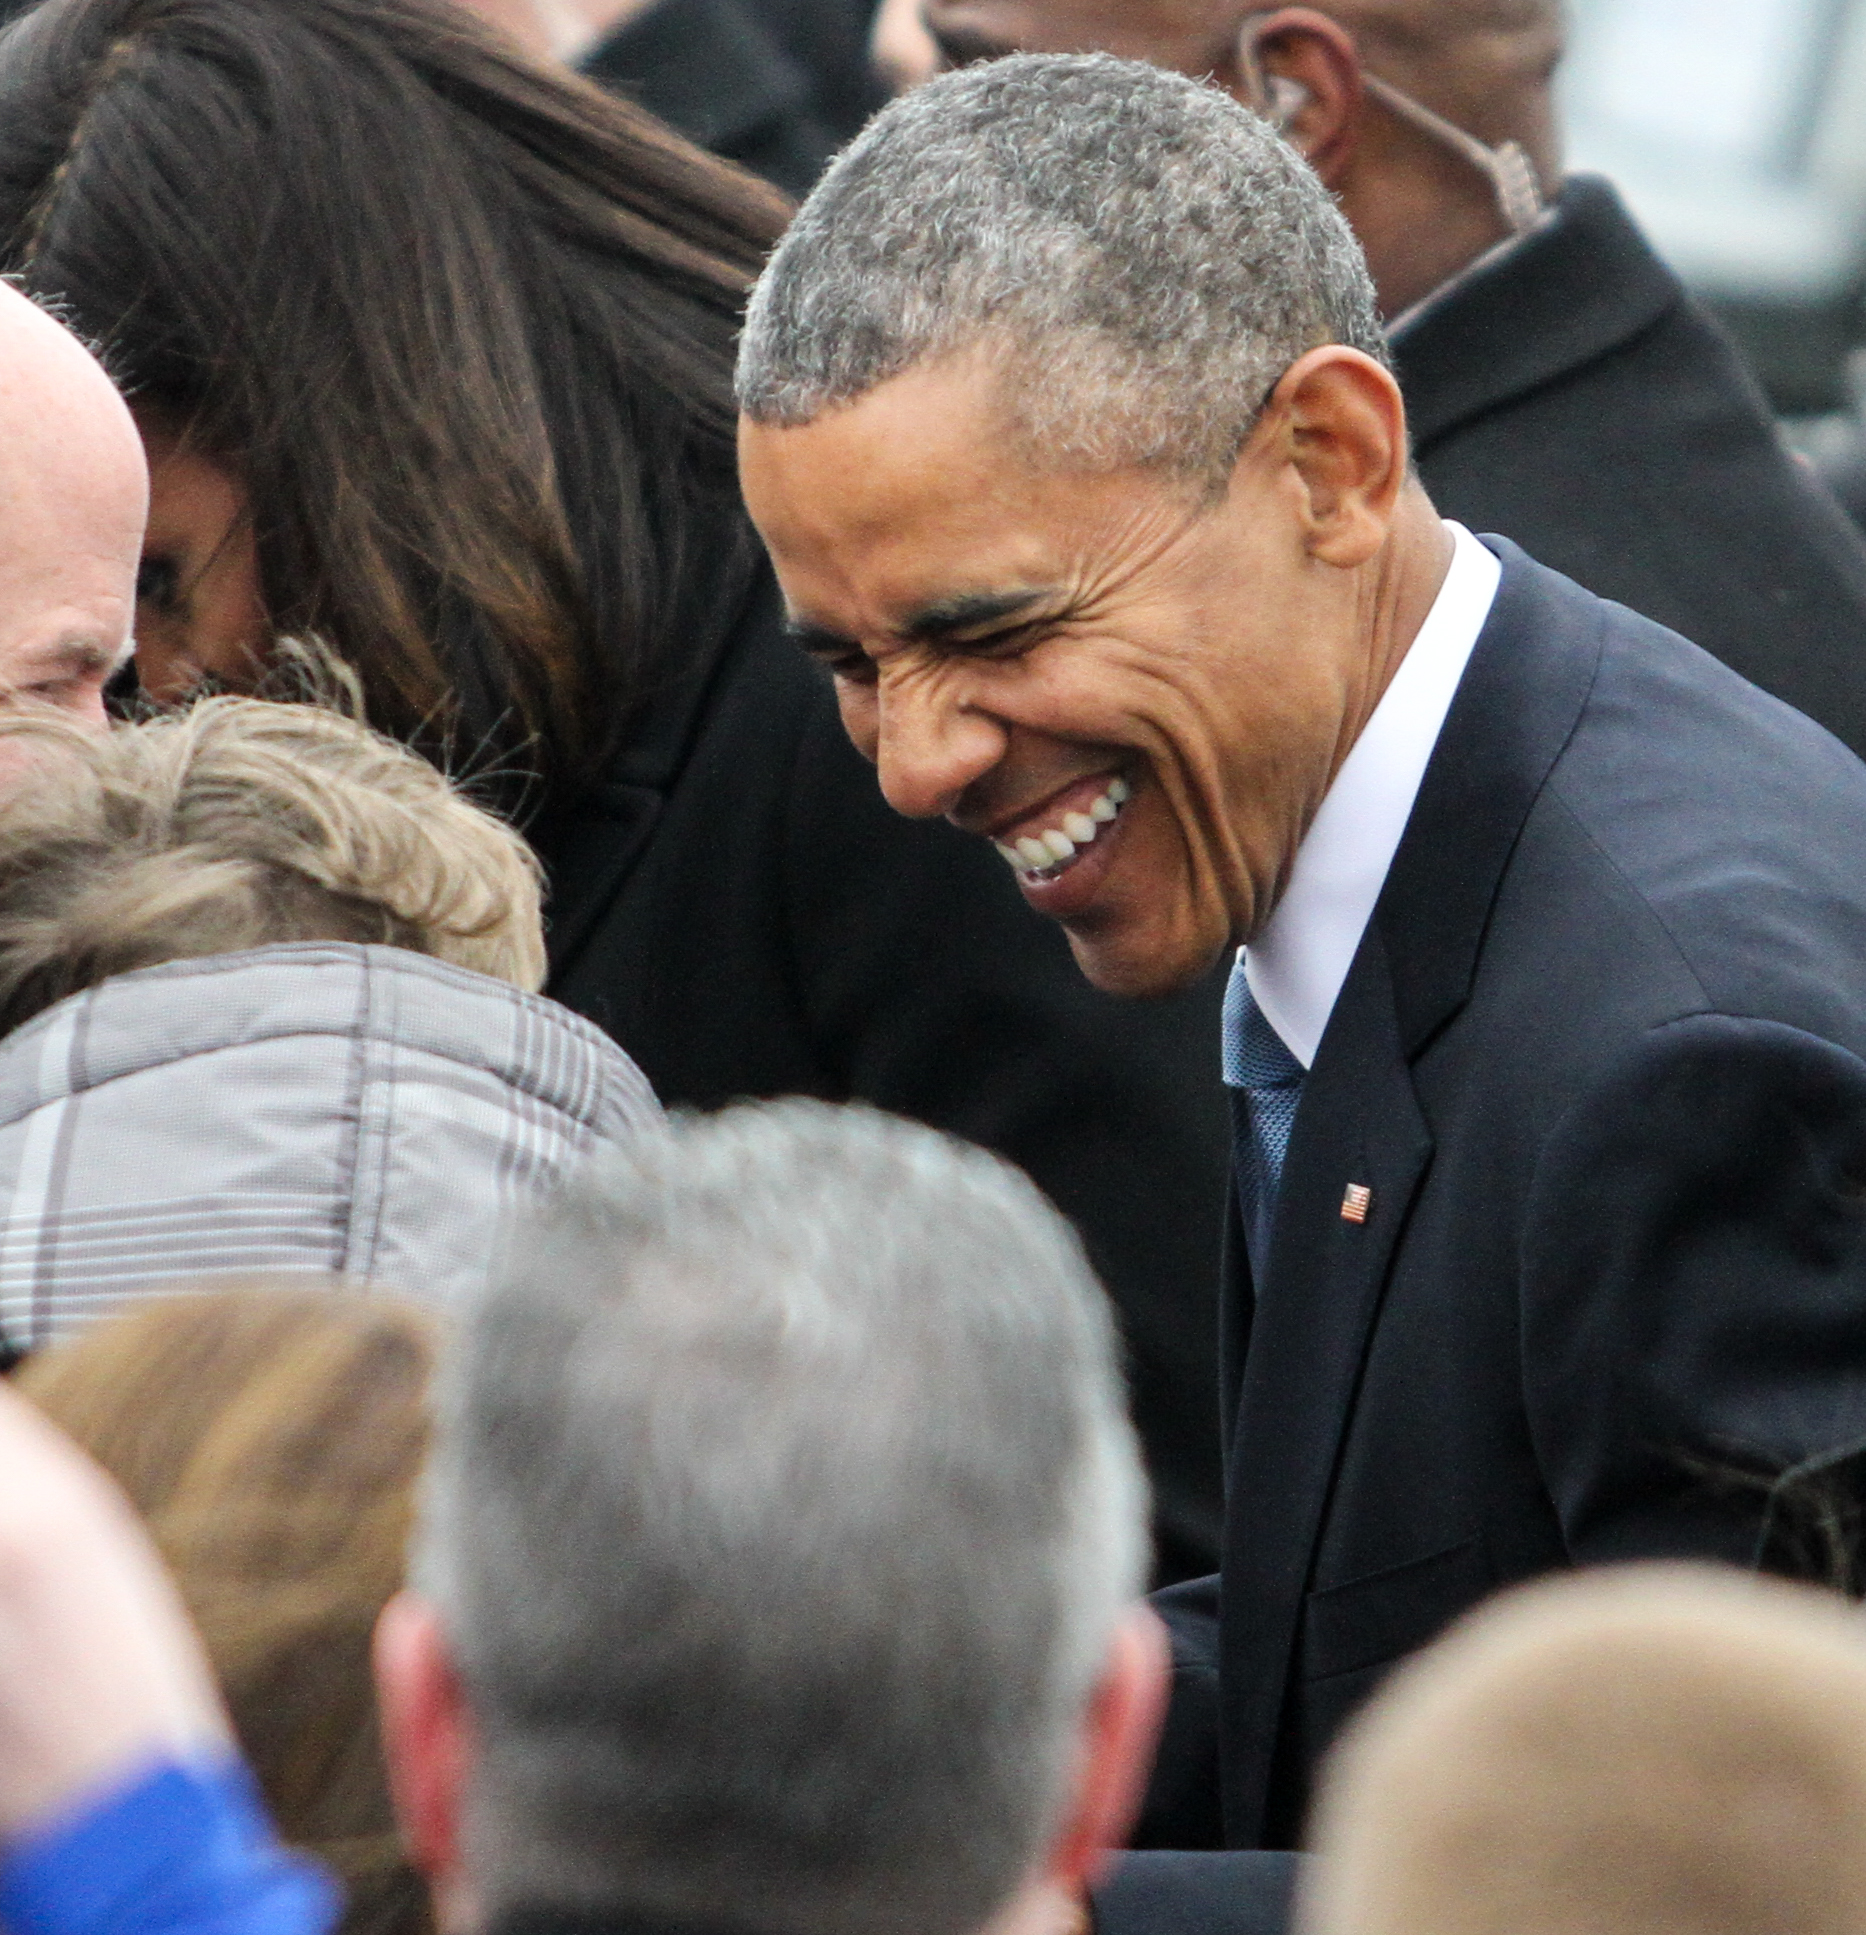 Obama speaks with supporters at Logan International Airport March 30, 2015.